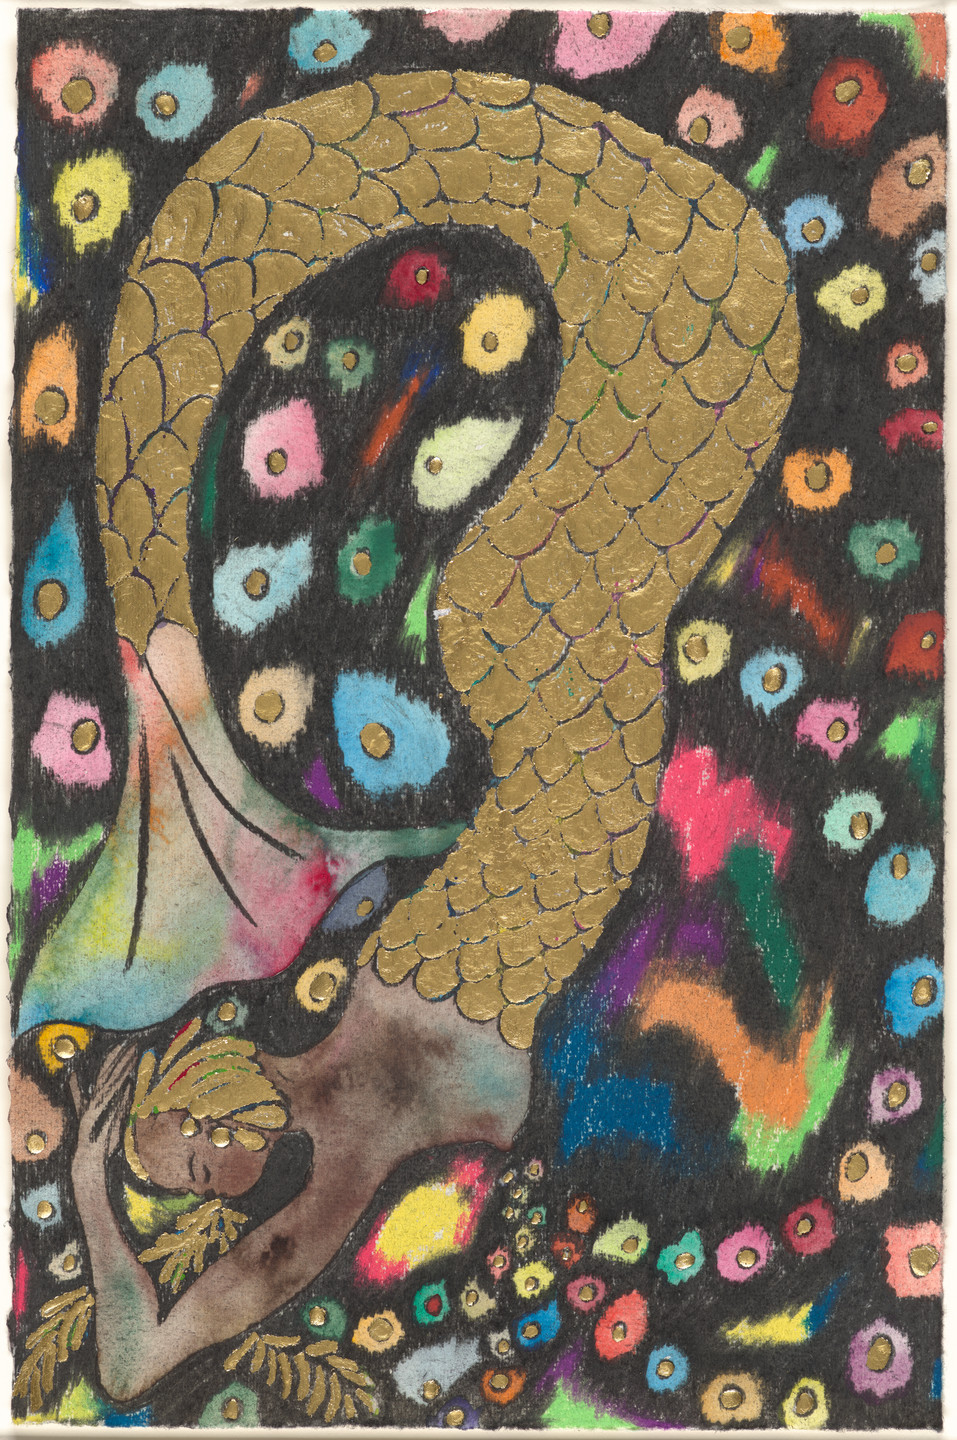 Chris Ofili. Nymph Dive (Rainbow). 2019